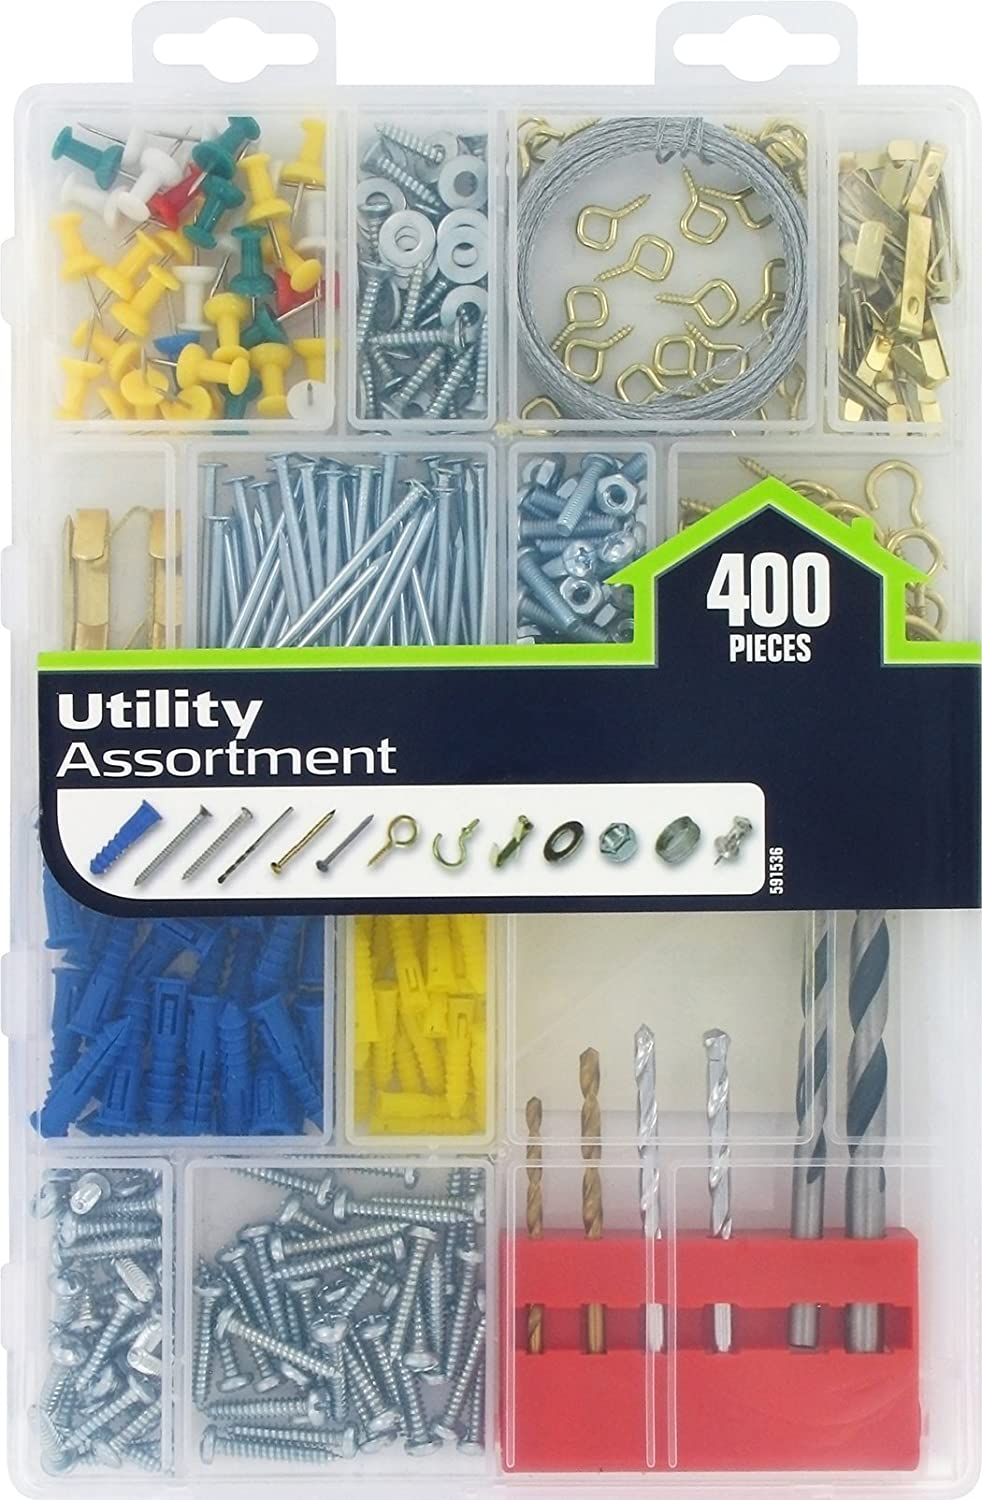 Sales of SALE items from new works The Hillman Group Attention brand 591536 400-Pack Utility Large Assortment